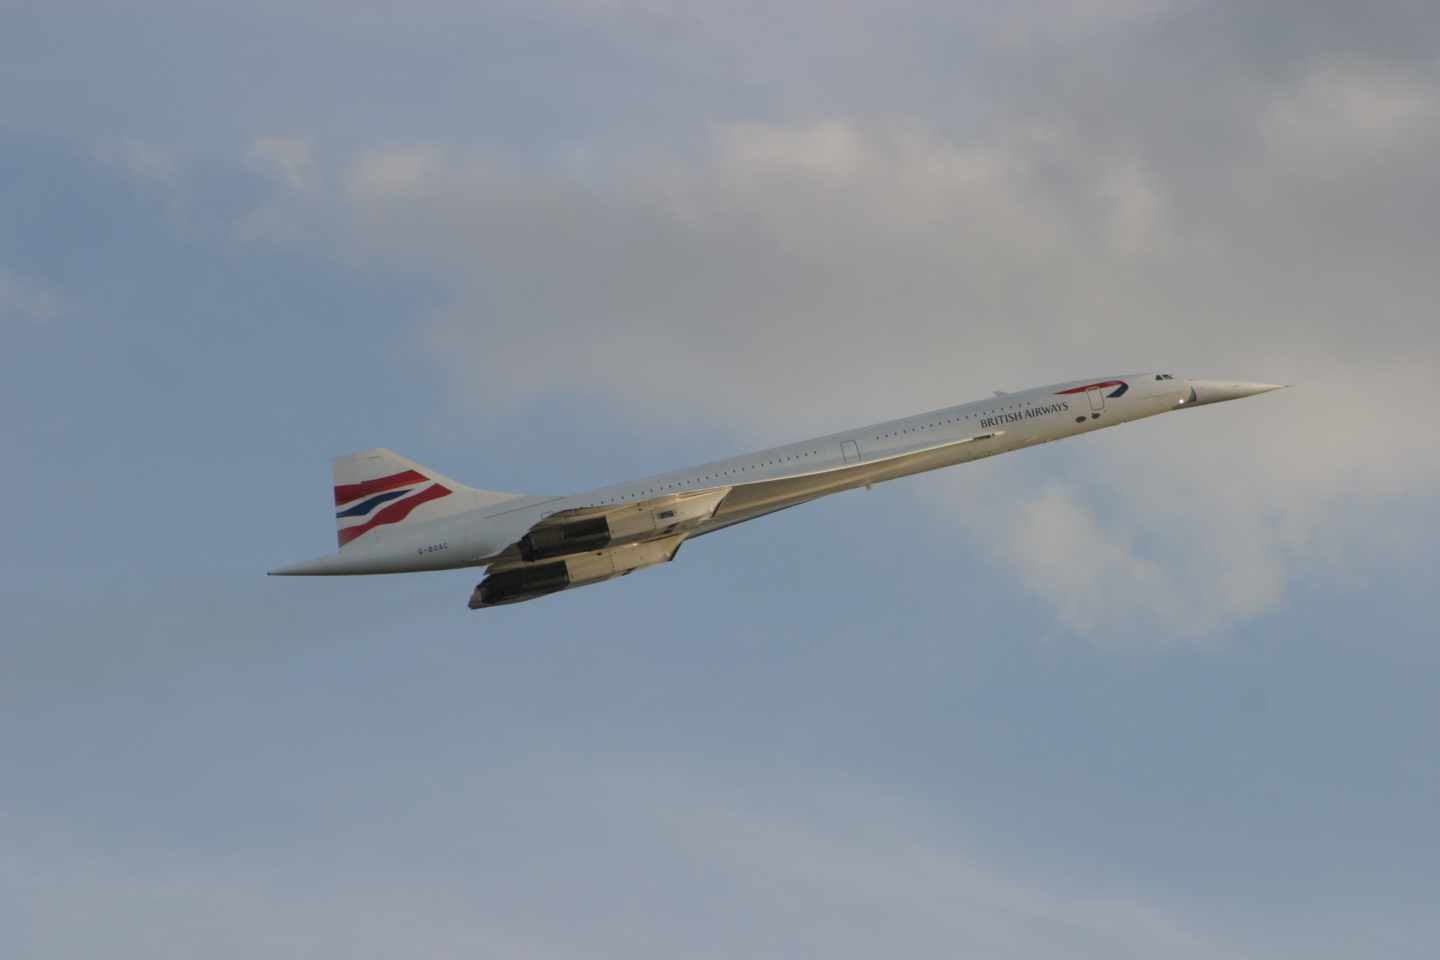 Un Concorde de British Airways en vuelo